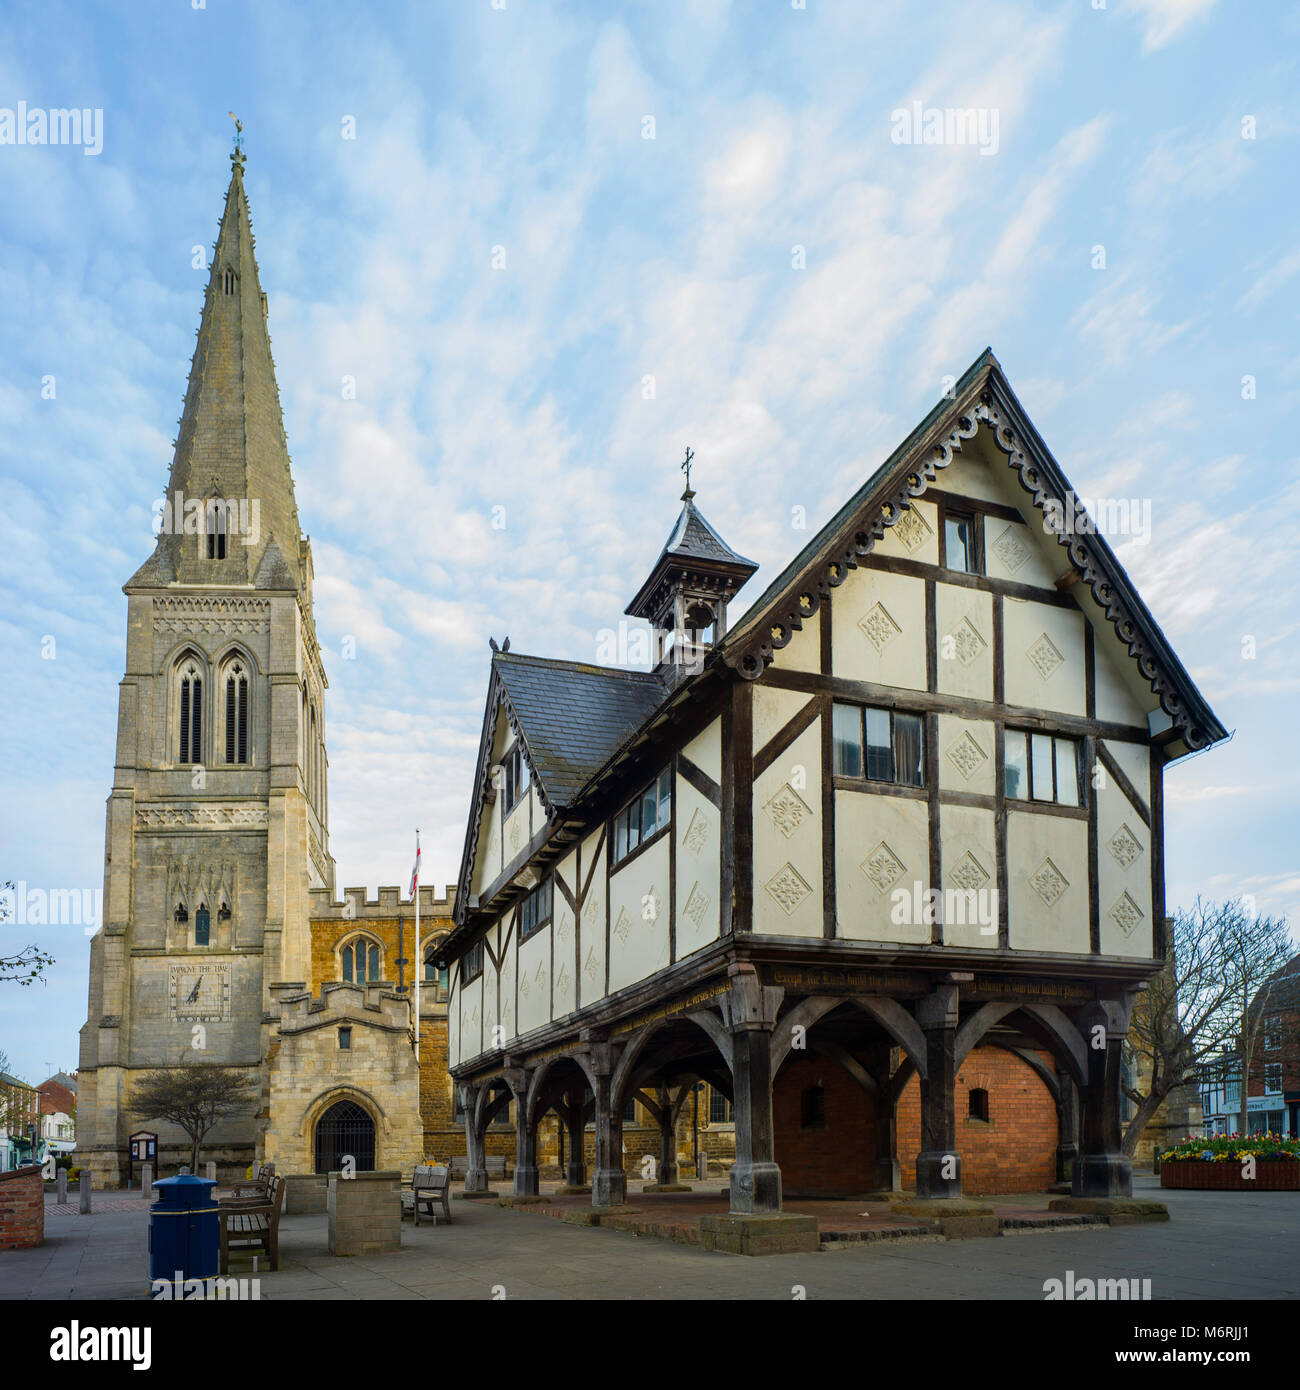 St. Dionysius Church and the Old Grammar School, Market Harborough. Both buildings are listed Grade 1. - Stock Image